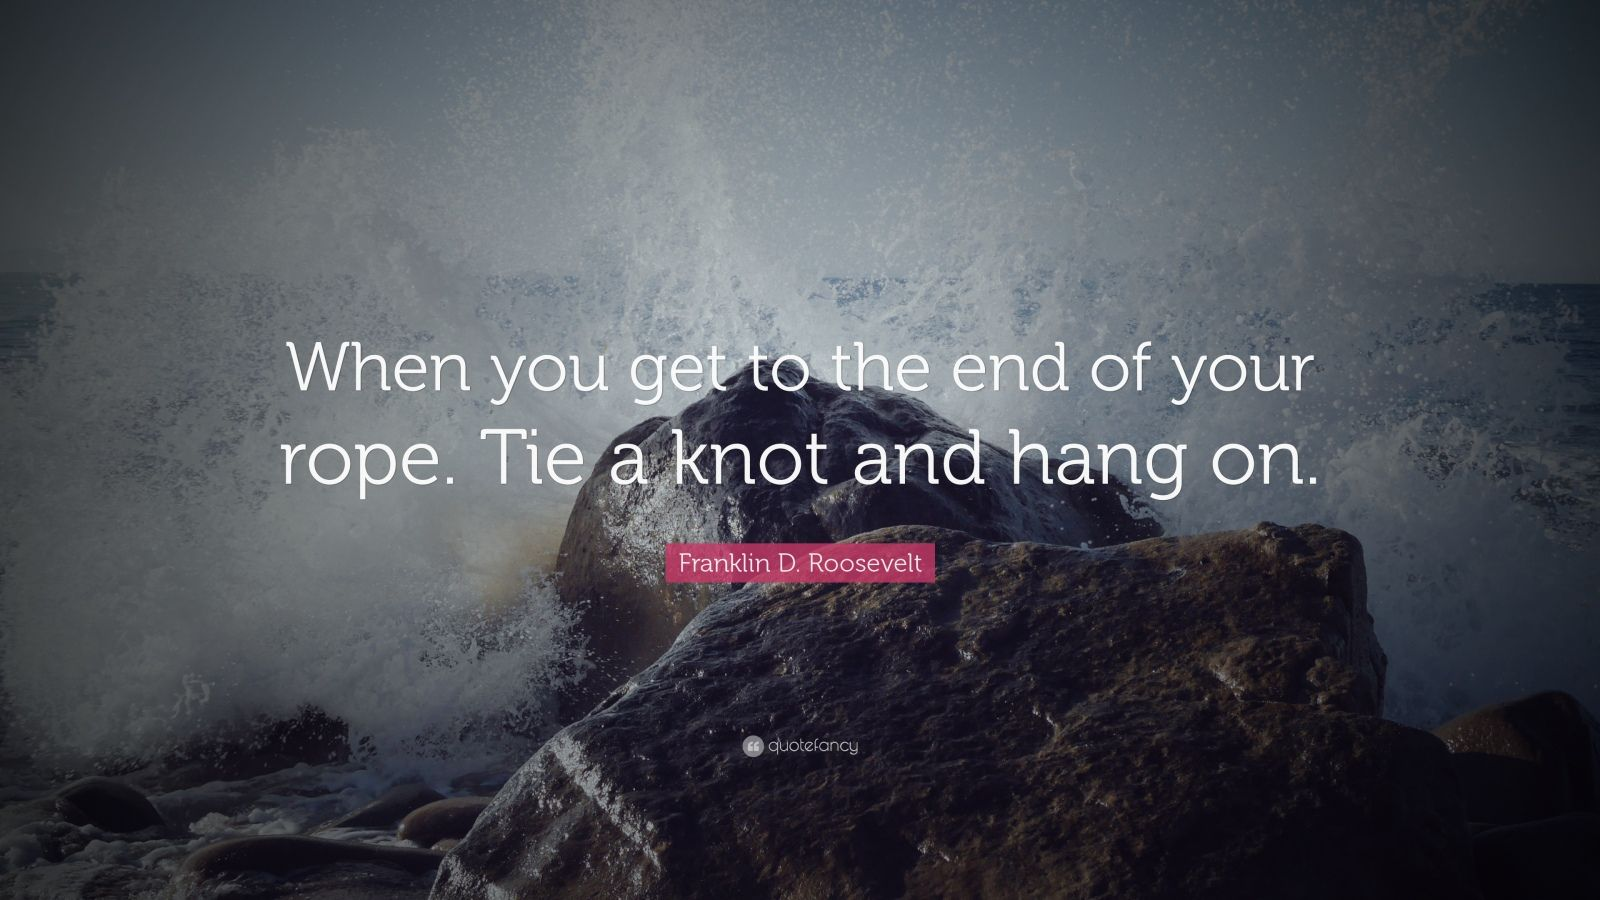 """Franklin D. Roosevelt Quote: """"When you get to the end of your rope. Tie a knot and hang on."""""""